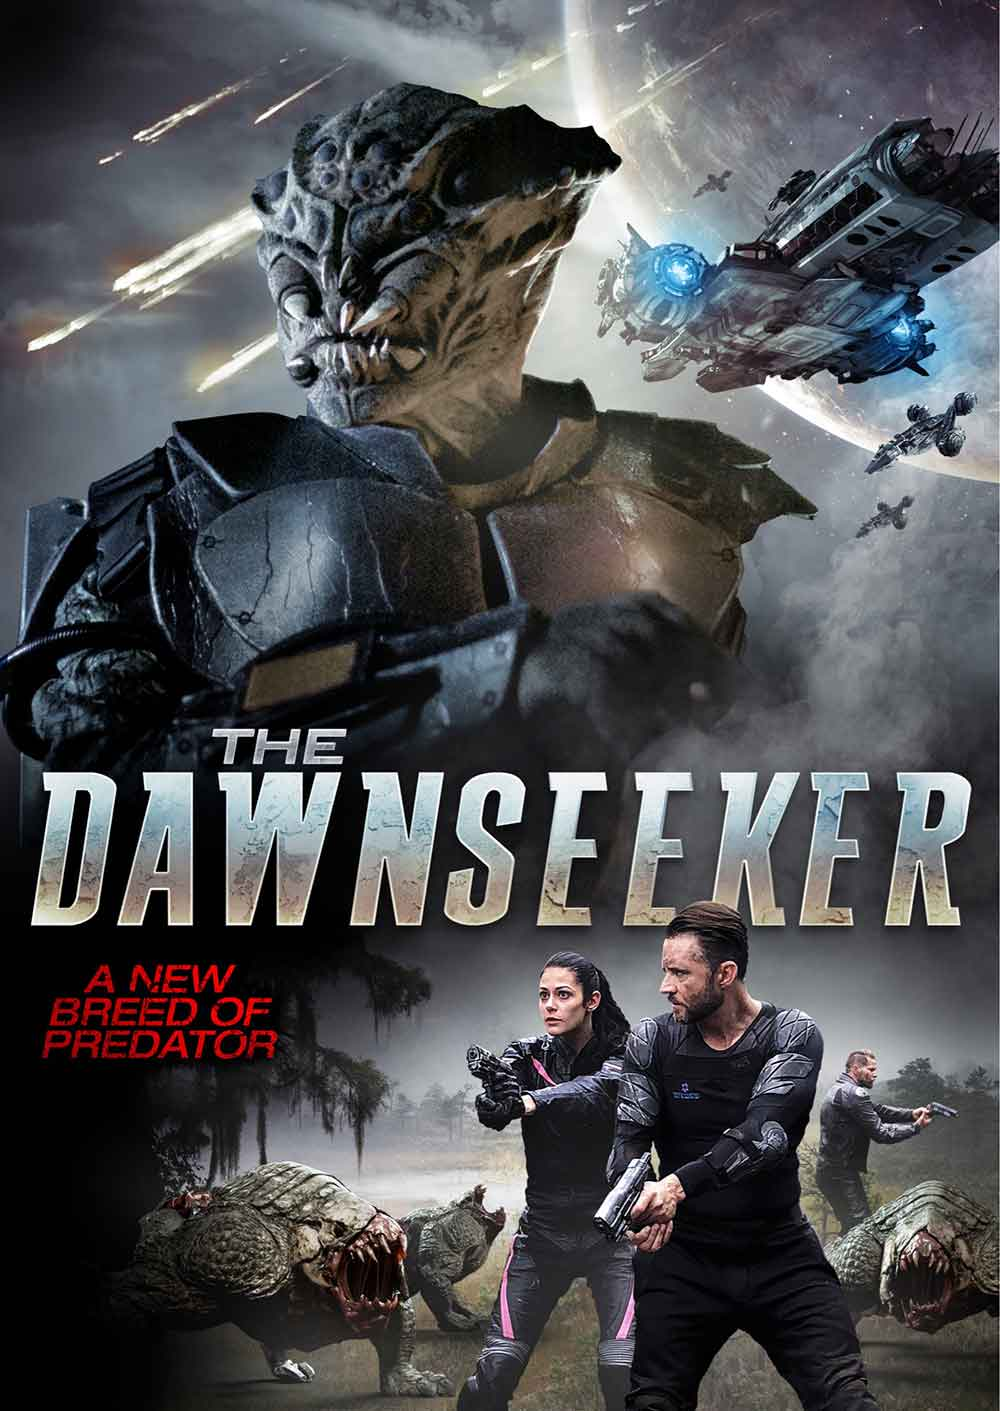 The Dawnseeker Review - OC Movie Reviews - Movie Reviews, Movie News, Documentary Reviews, Short Films, Short Film Reviews, Trailers, Movie Trailers, Interviews, film reviews, film news, hollywood, indie films, documentaries